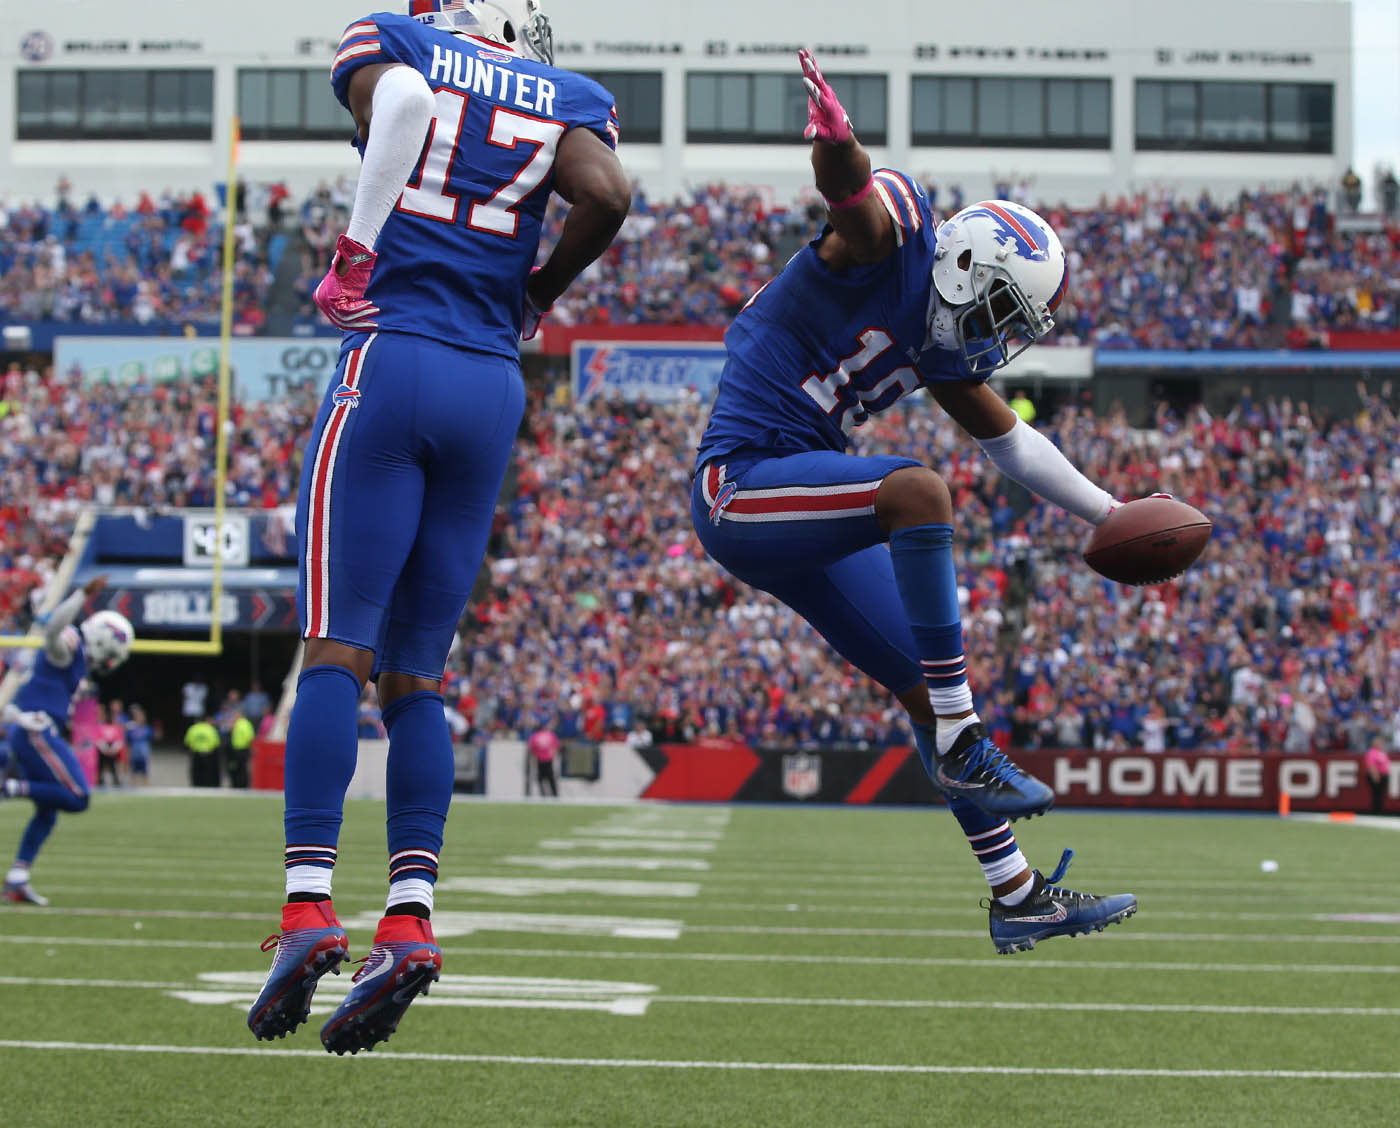 Buffalo Bills wide receiver Robert Woods (10) celebrates his touchdown catch during the fourth quarter against the 49ers at New Era Field in Orchard Park, N.Y. on Sunday, Oct. 16, 2016. (James P. McCoy/ Buffalo News)